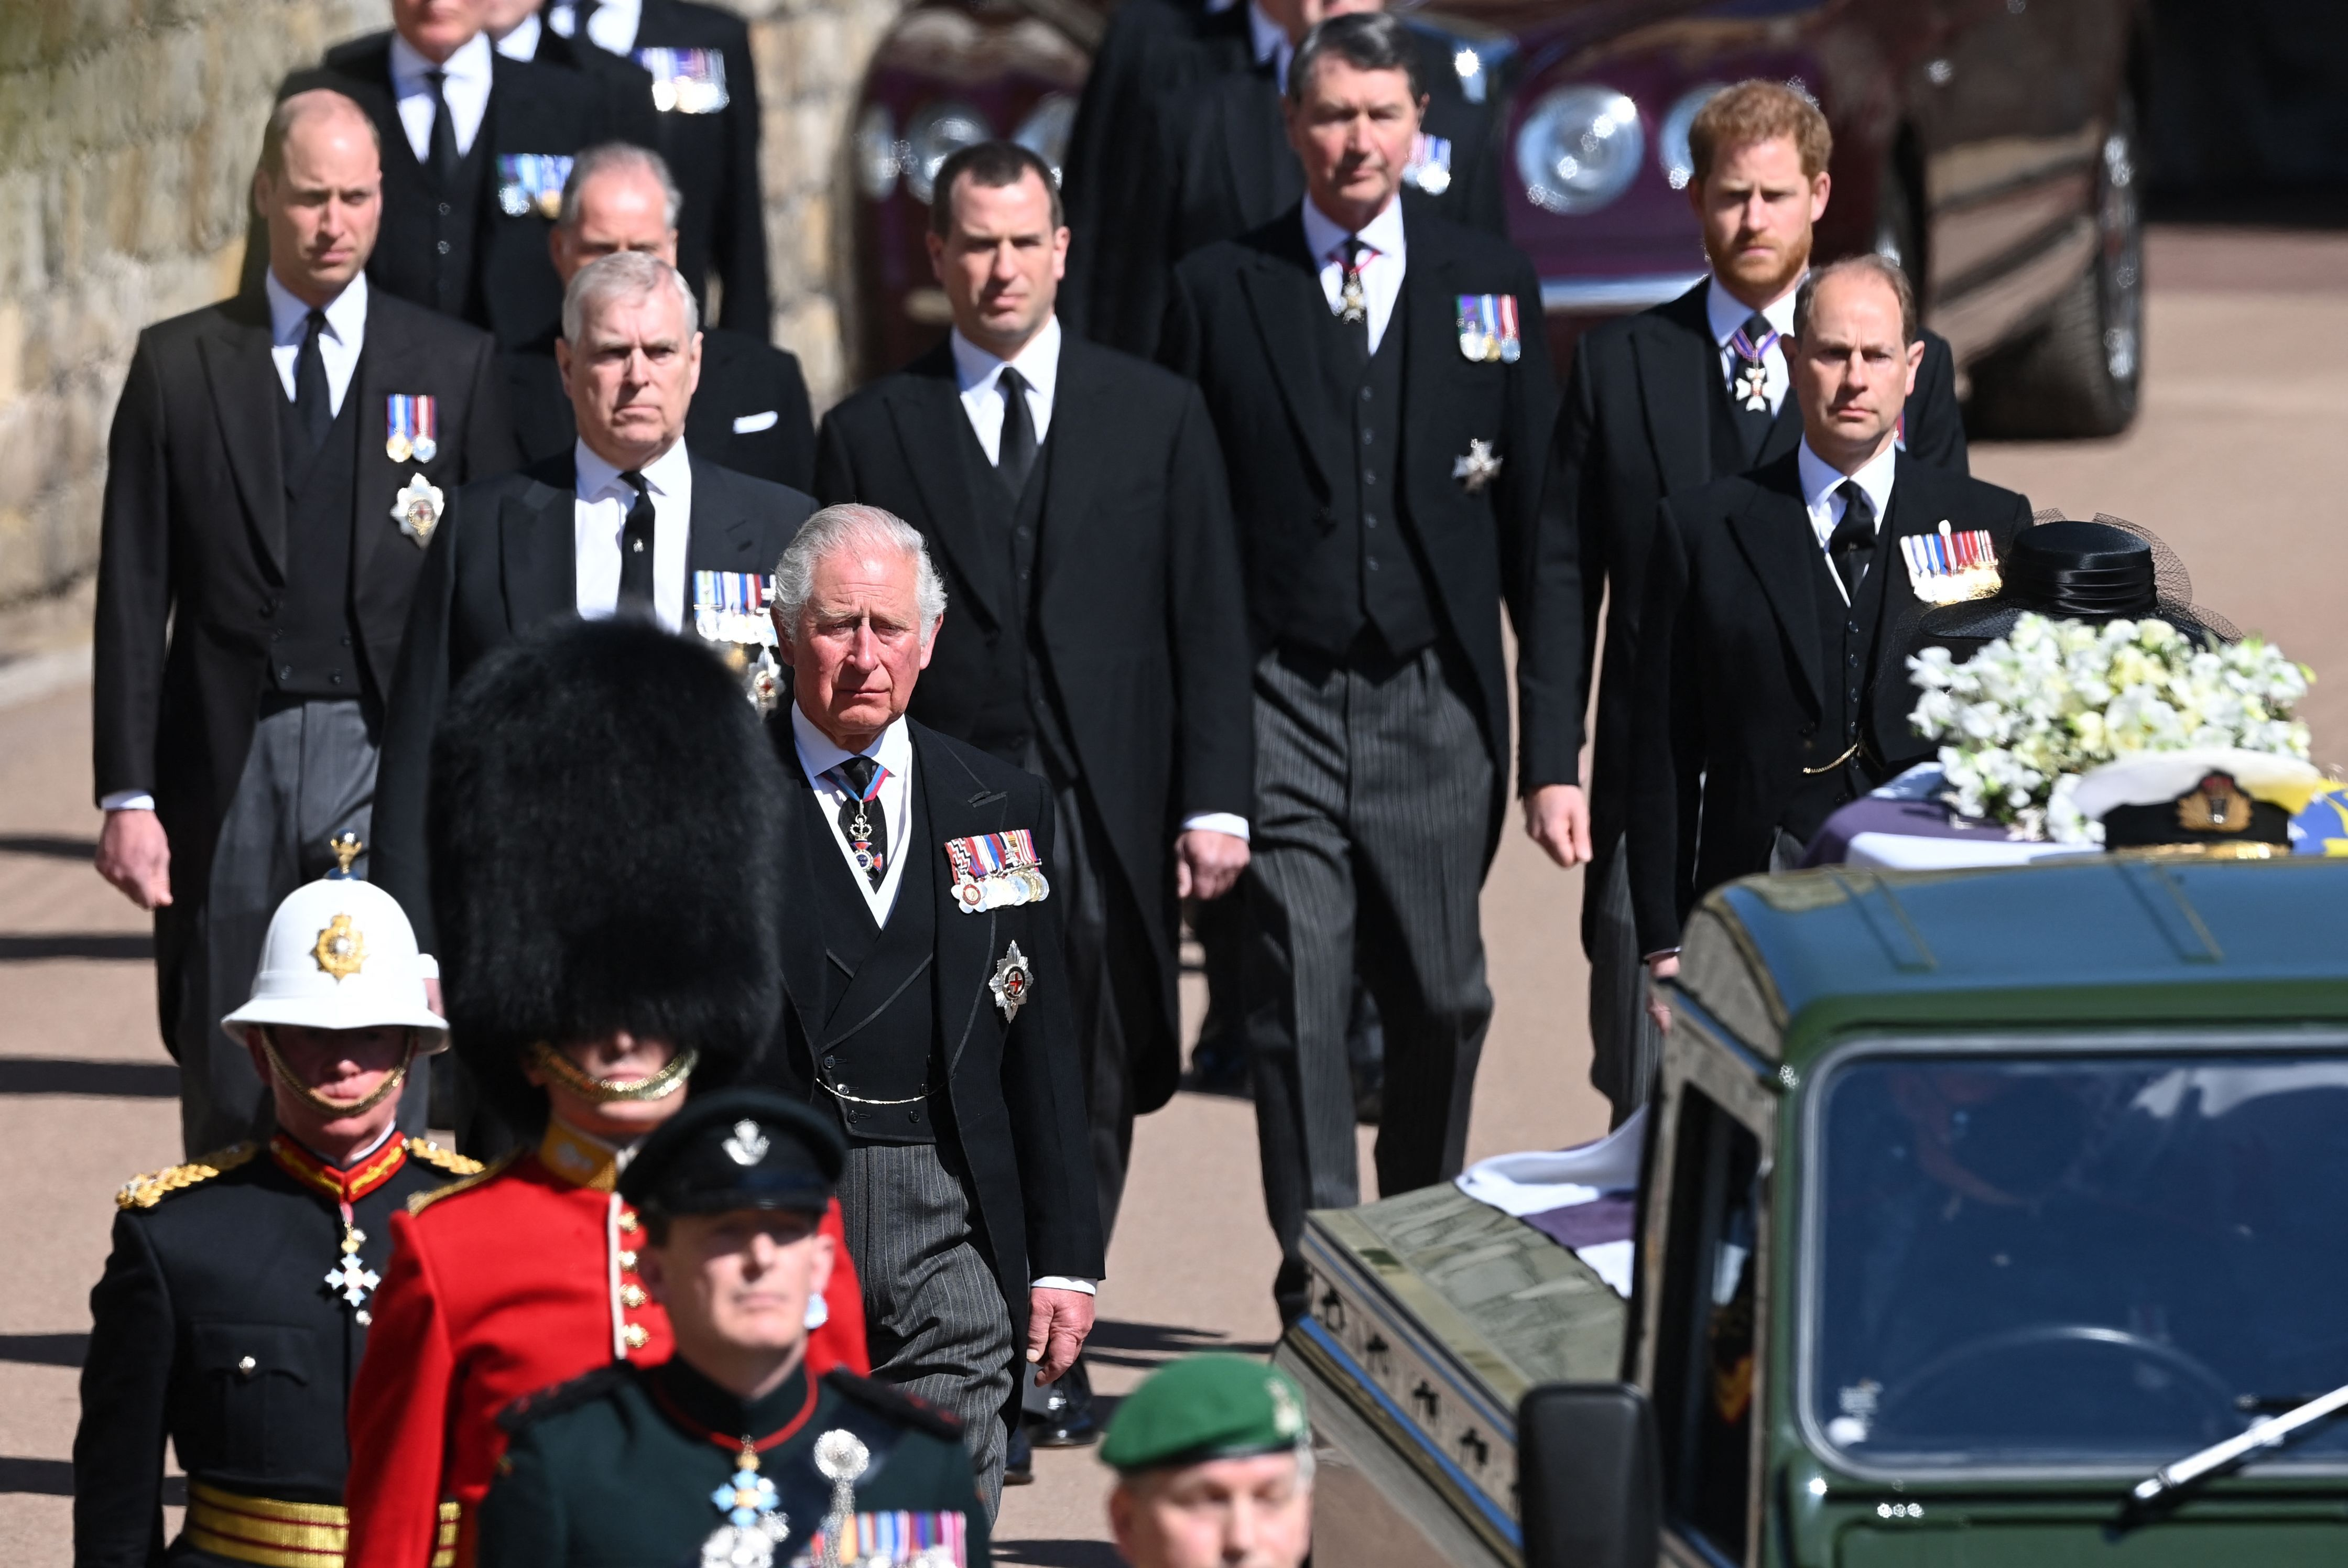 Charles, Prince of Wales and his sons Prince William and Prince Harry walk during the ceremonial funeral procession of Prince Philip on April 17, 2021 | Photo: Getty Images